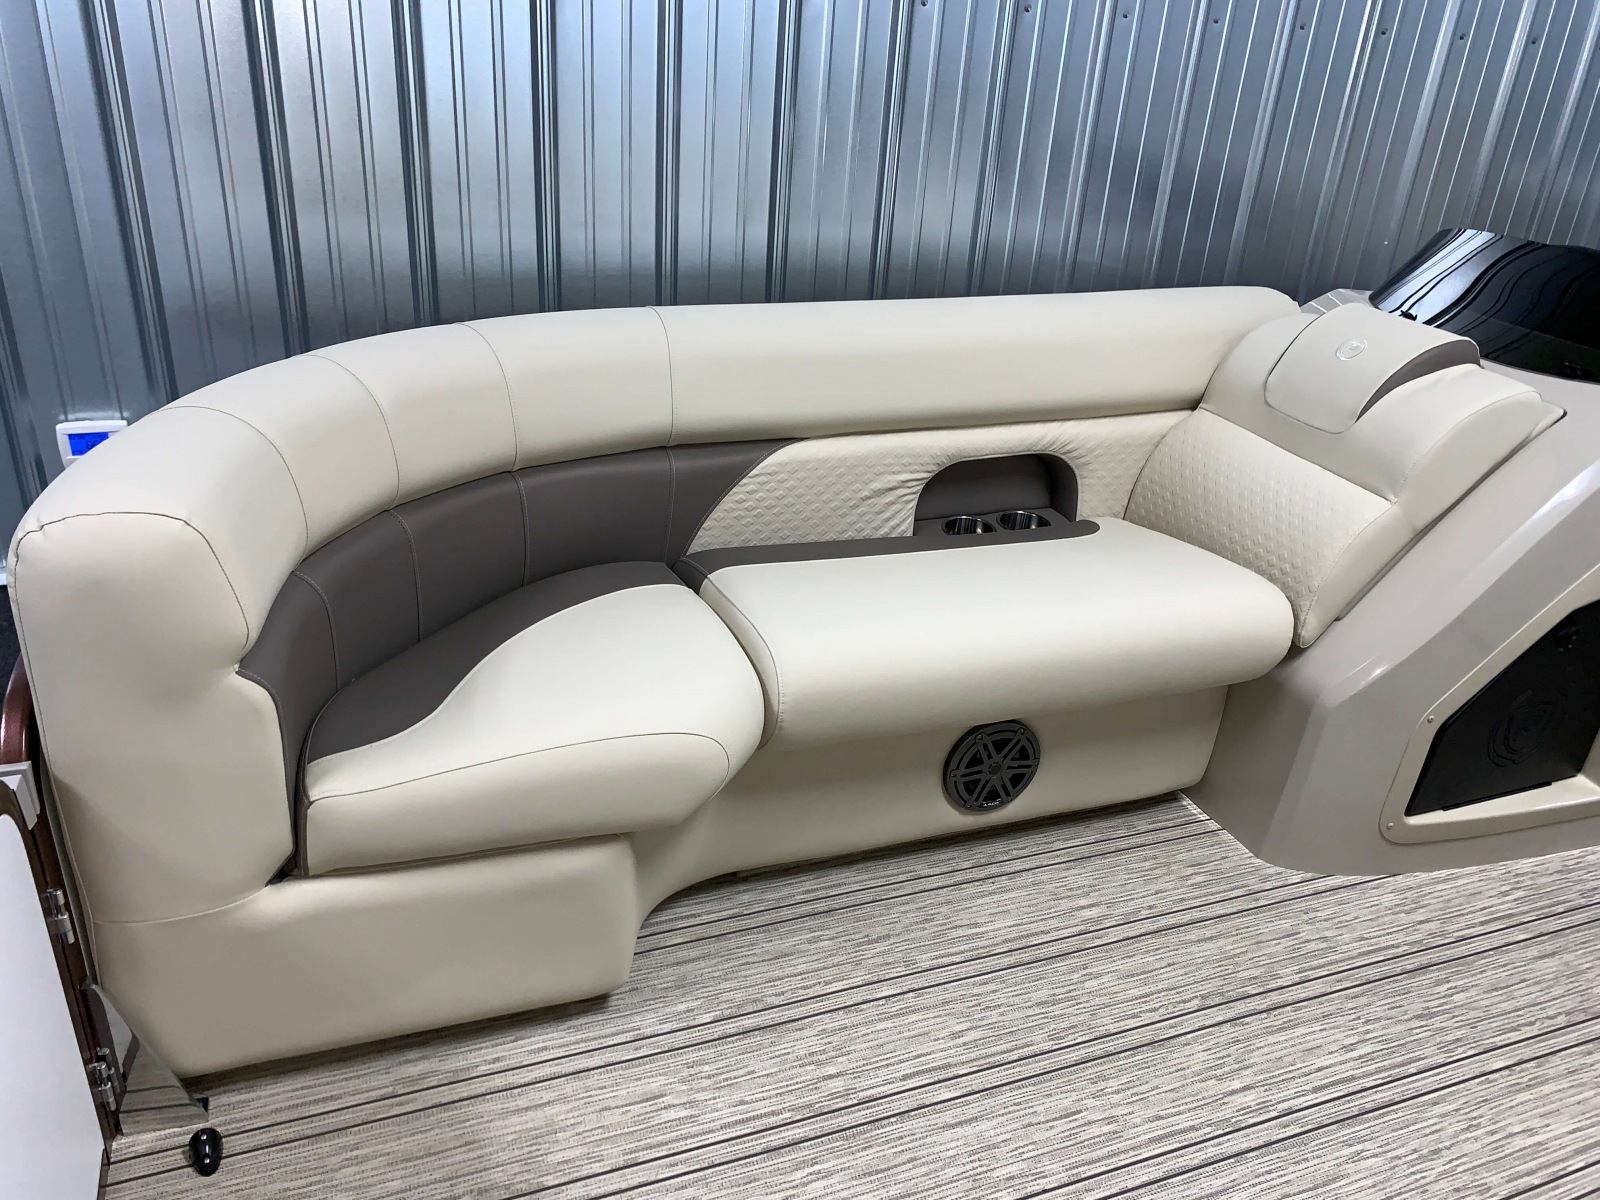 2020-Premier-200-Sunsation-RE-Pontoon-Boat-Interior-Seating-2